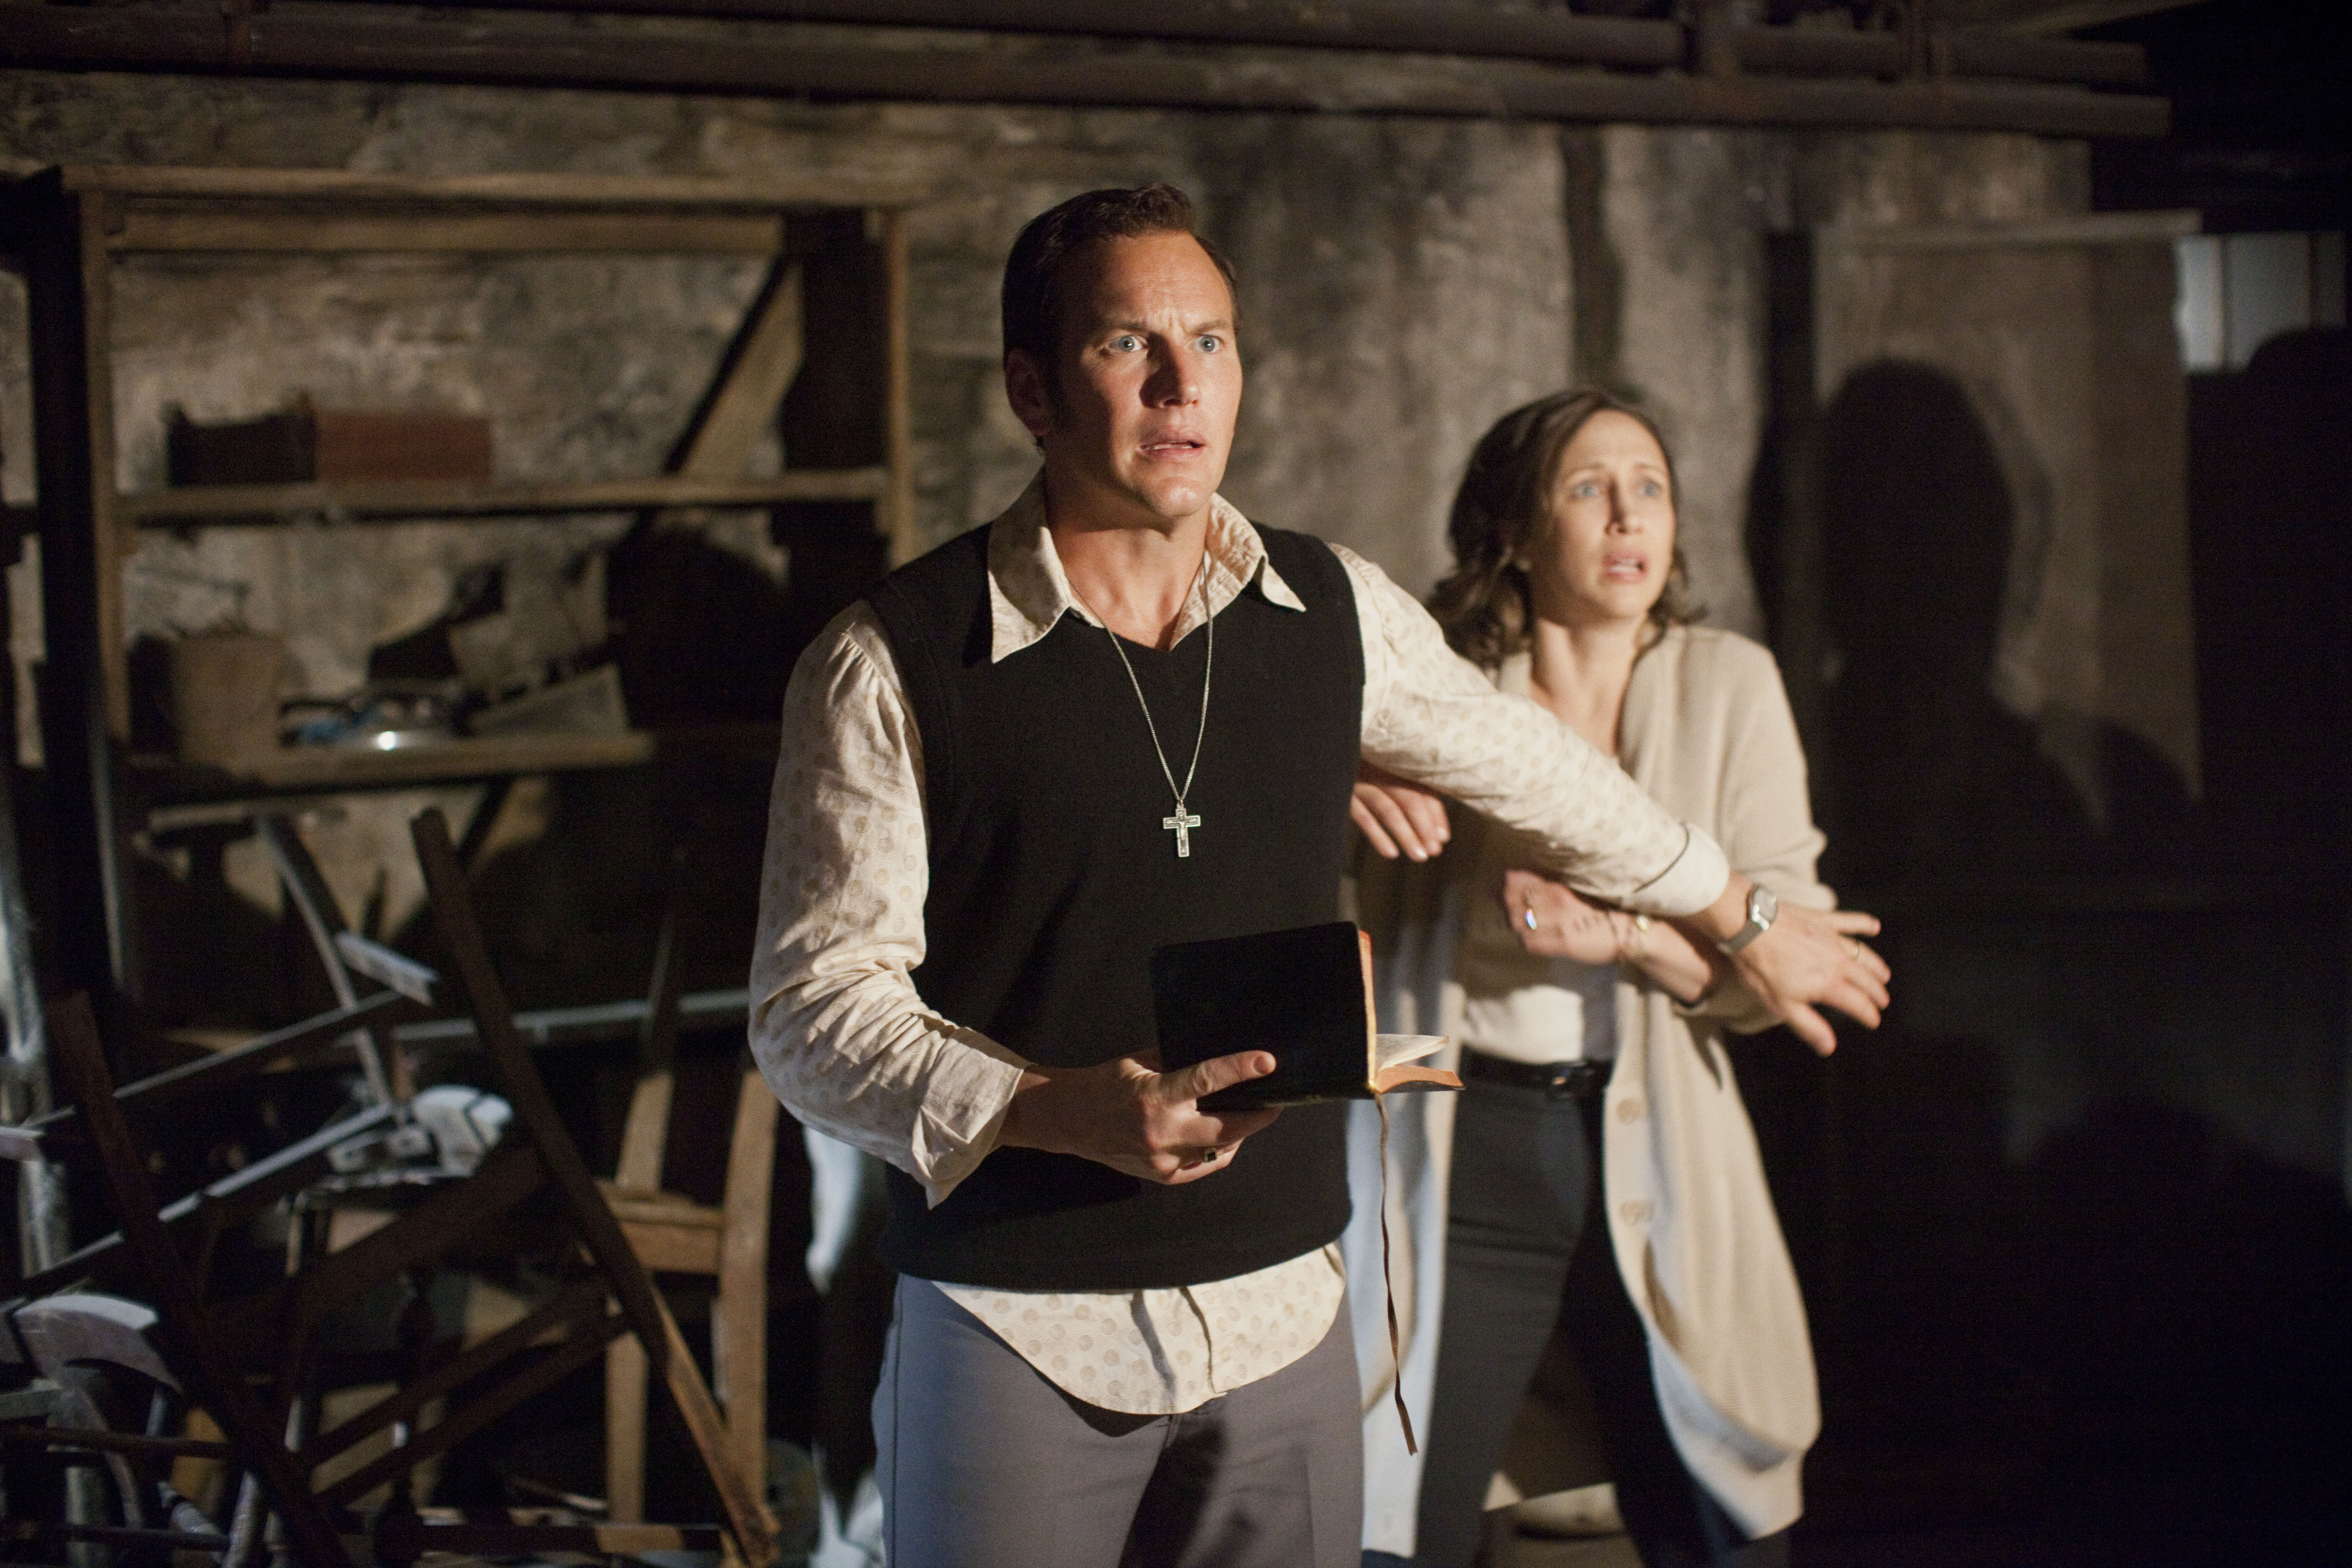 CJD 11237r New Stills From The Conjuring Released